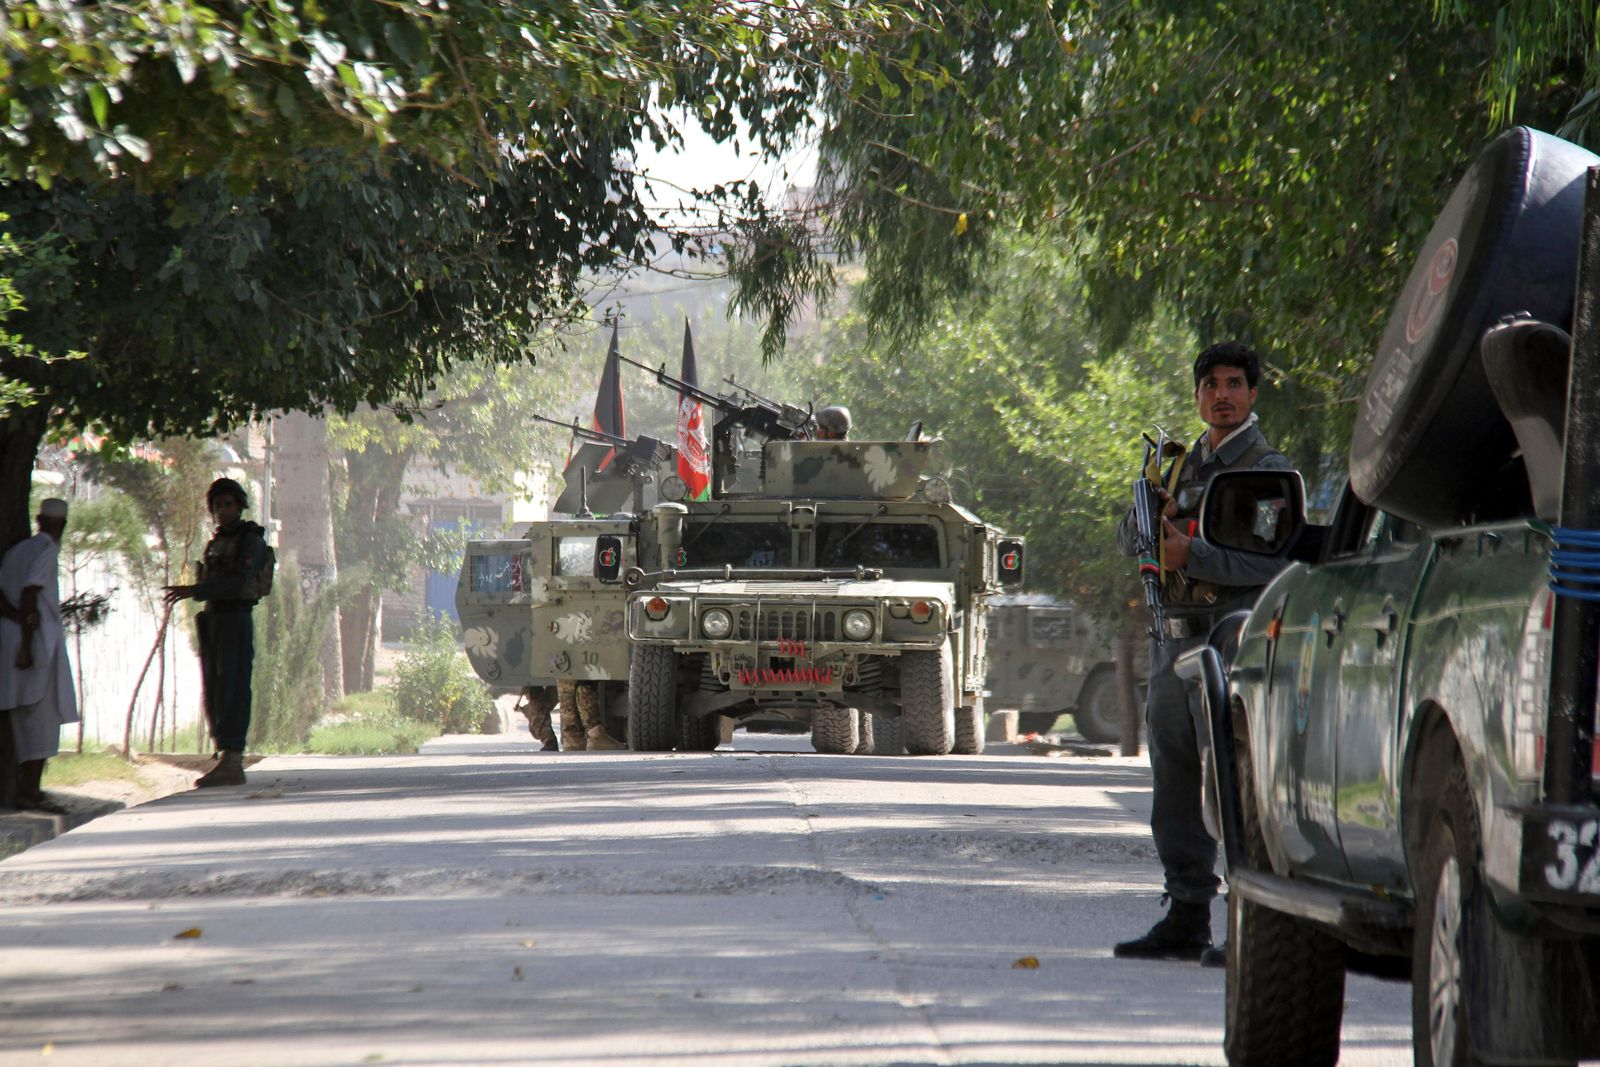 Afghan security forces arrive near the site of a suicide bombing and gun battle as militants attempted to storm a government office, in Jalalabad, the provincial capital of eastern Afghanistan, Wednesday, Sept. 18, 2019. The violence comes as Afghanistan prepares for presidential elections on Sept. 28, a vote the Taliban vehemently oppose. (AP Photo)